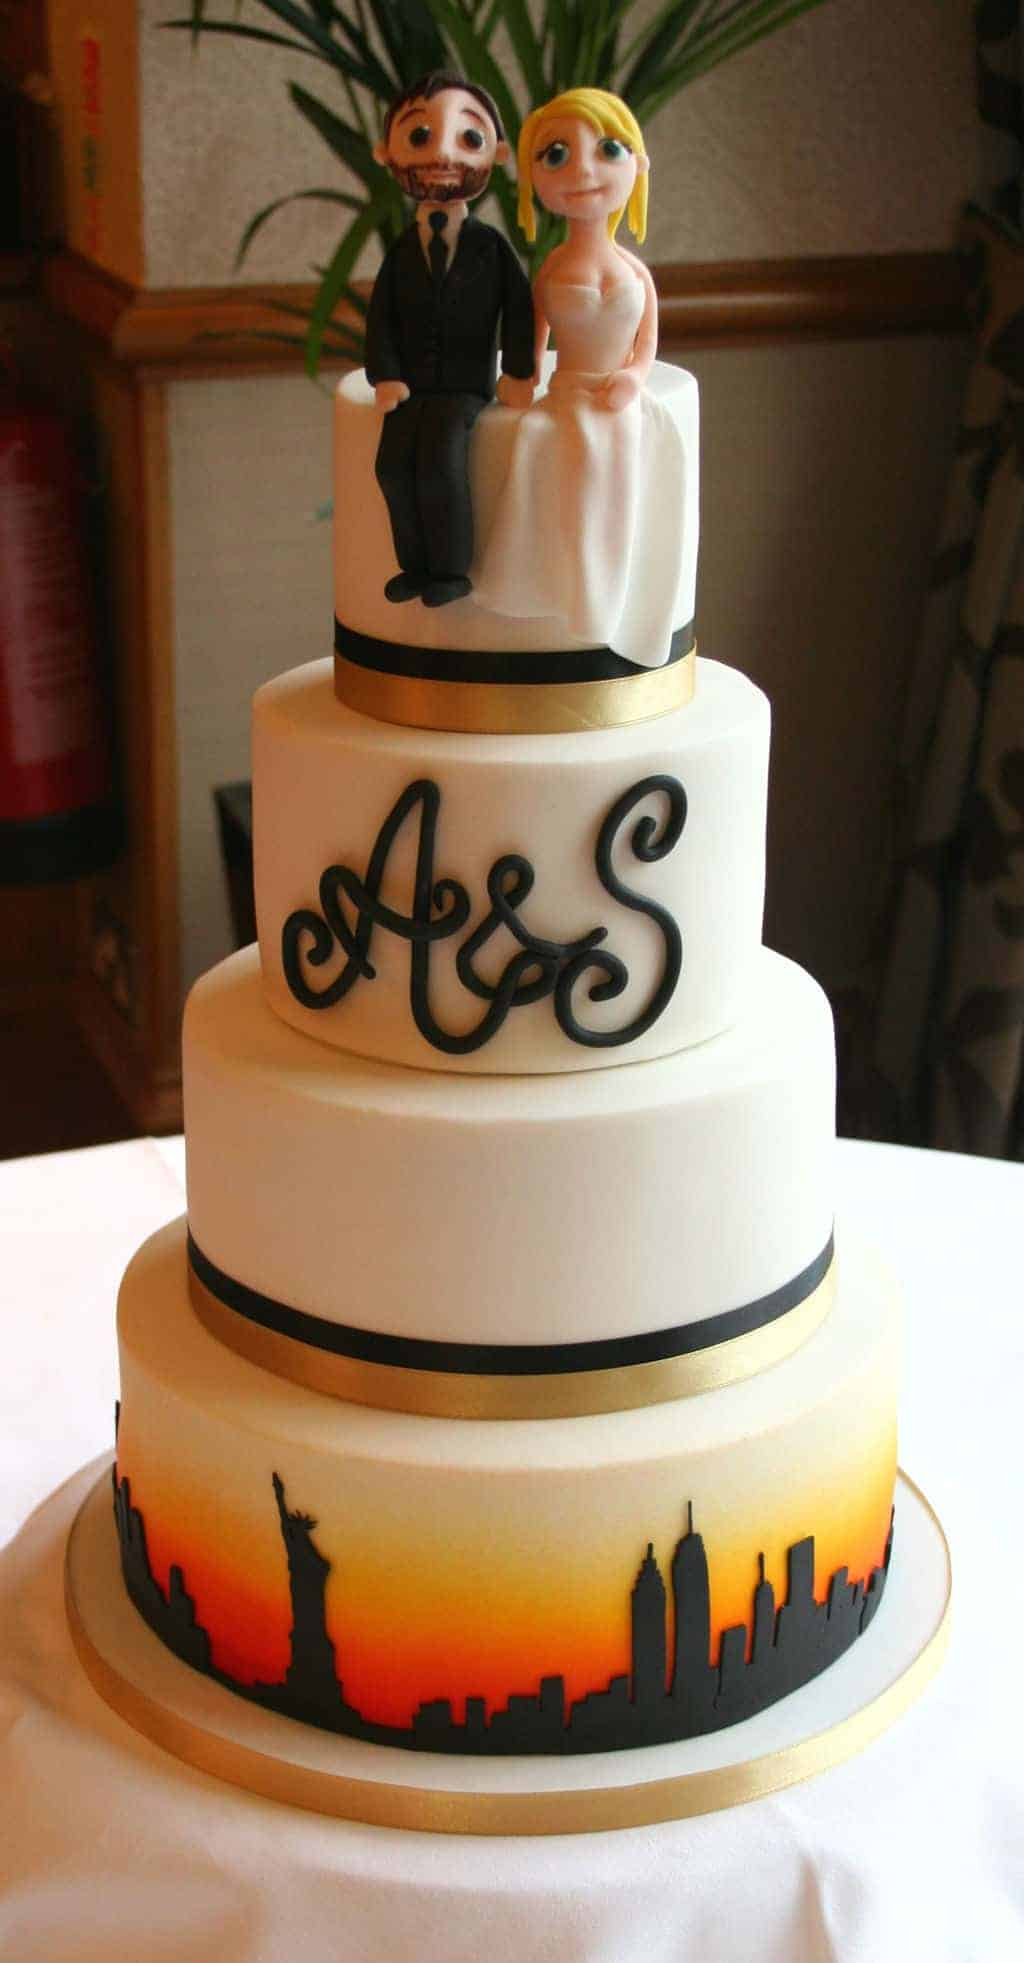 new york wedding cakes wedding cake designers bakers amp decorators 17837